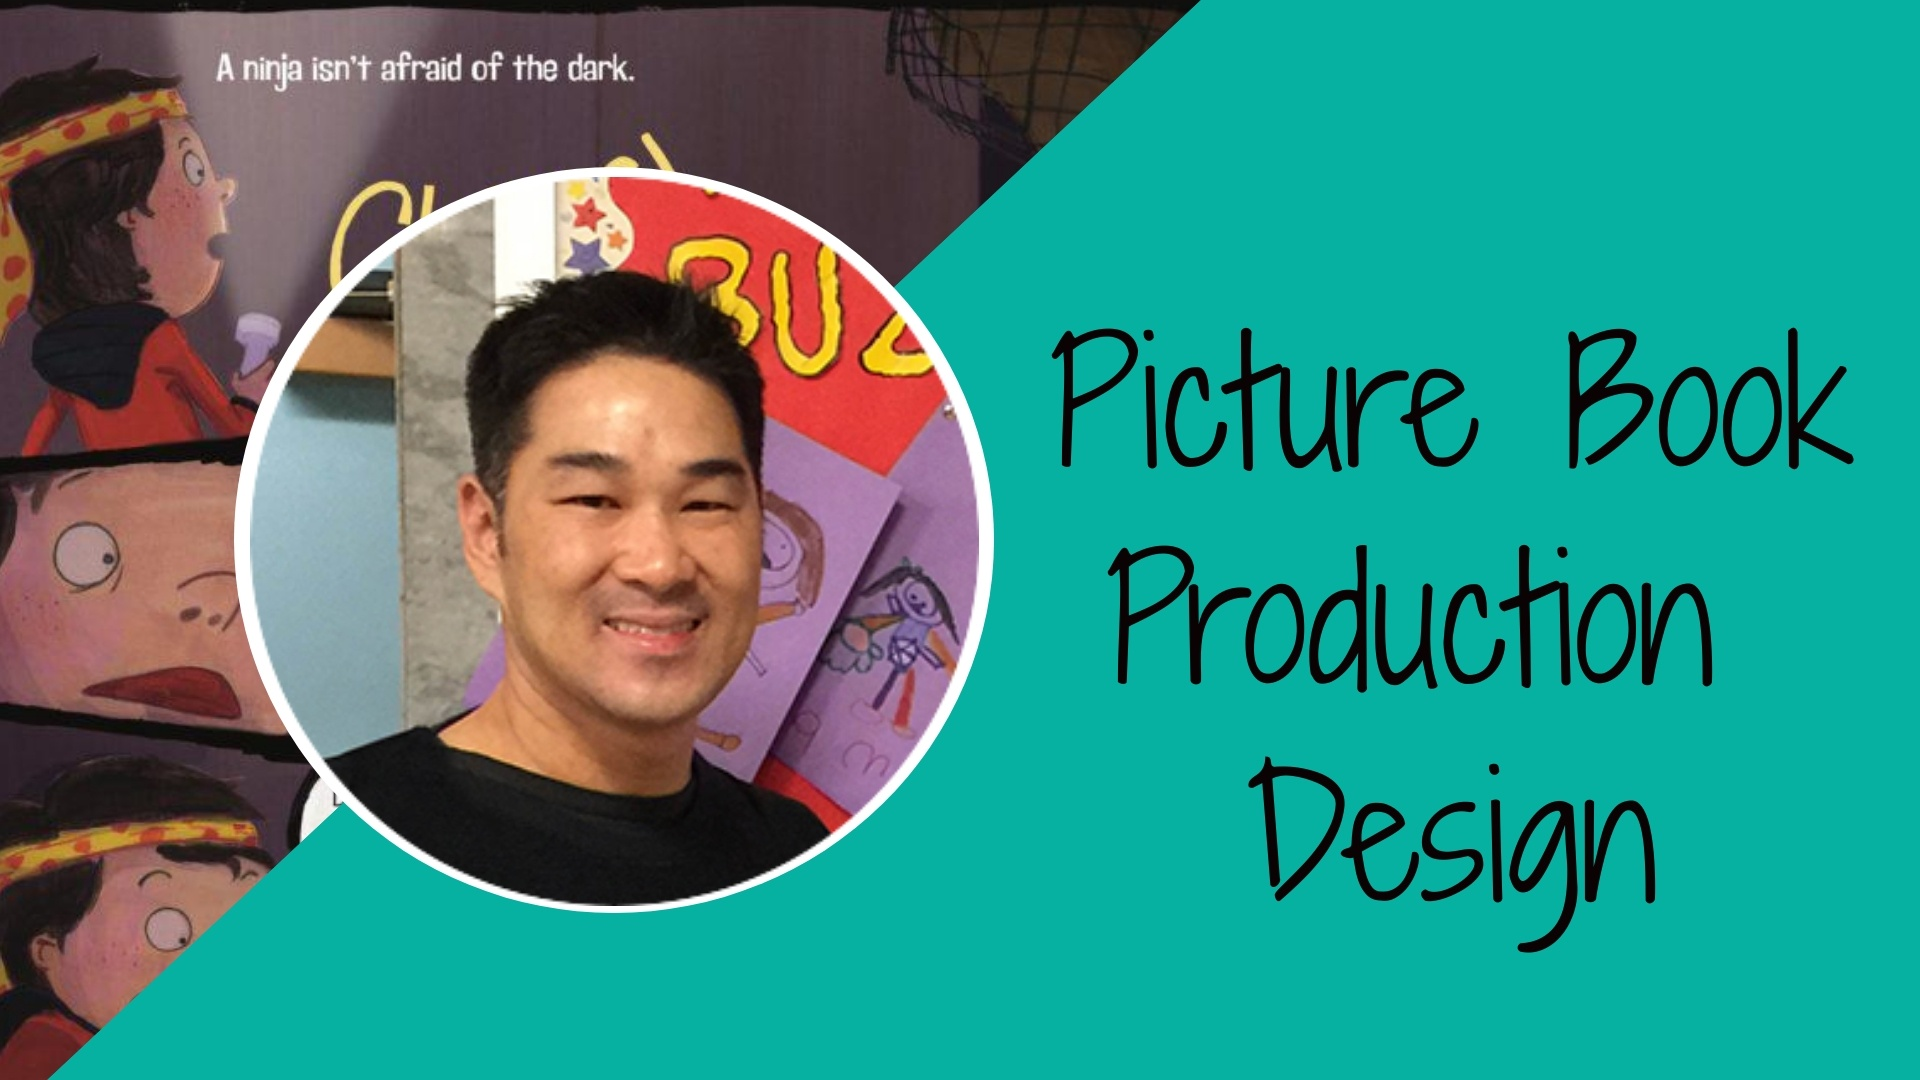 COURSE: Picture Book Production Design